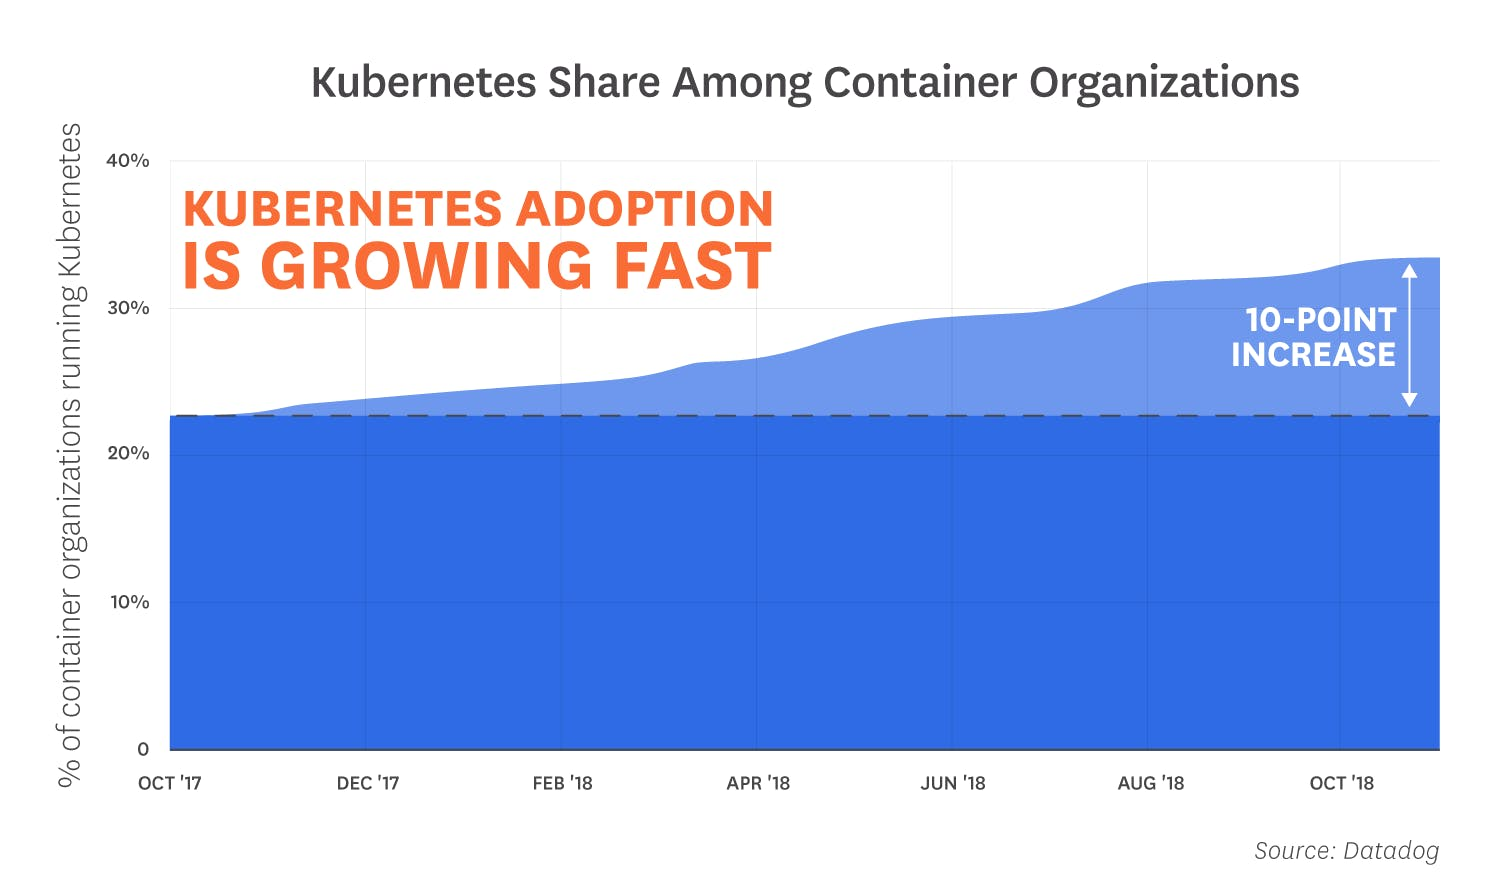 container-orchestration-2018/orchestration-2018-fact-2-v3.png